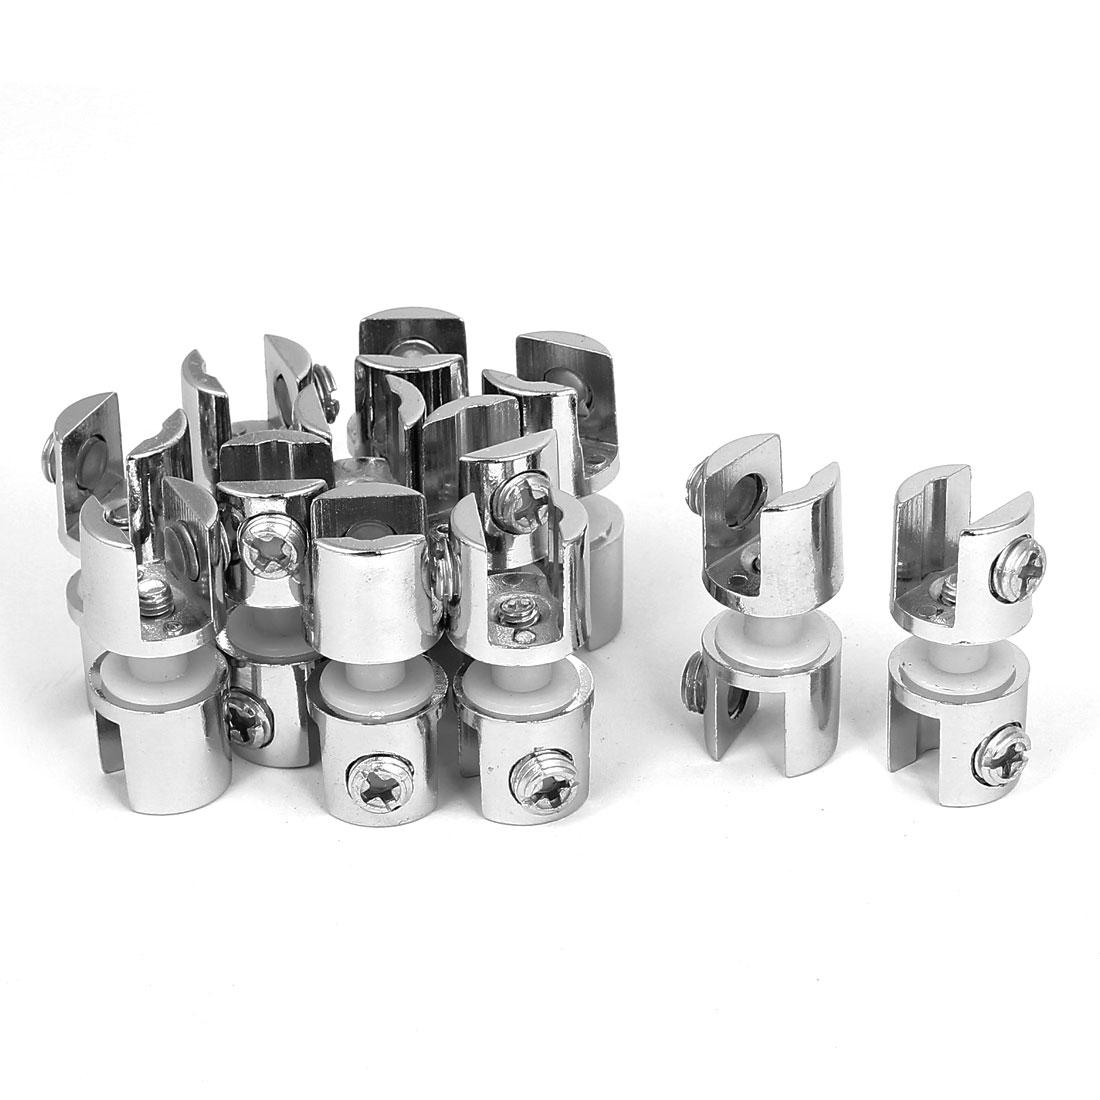 Zinc Alloy 10mm Thickness Window Glass Shelf Clip Clamp Support Bracket 12pcs